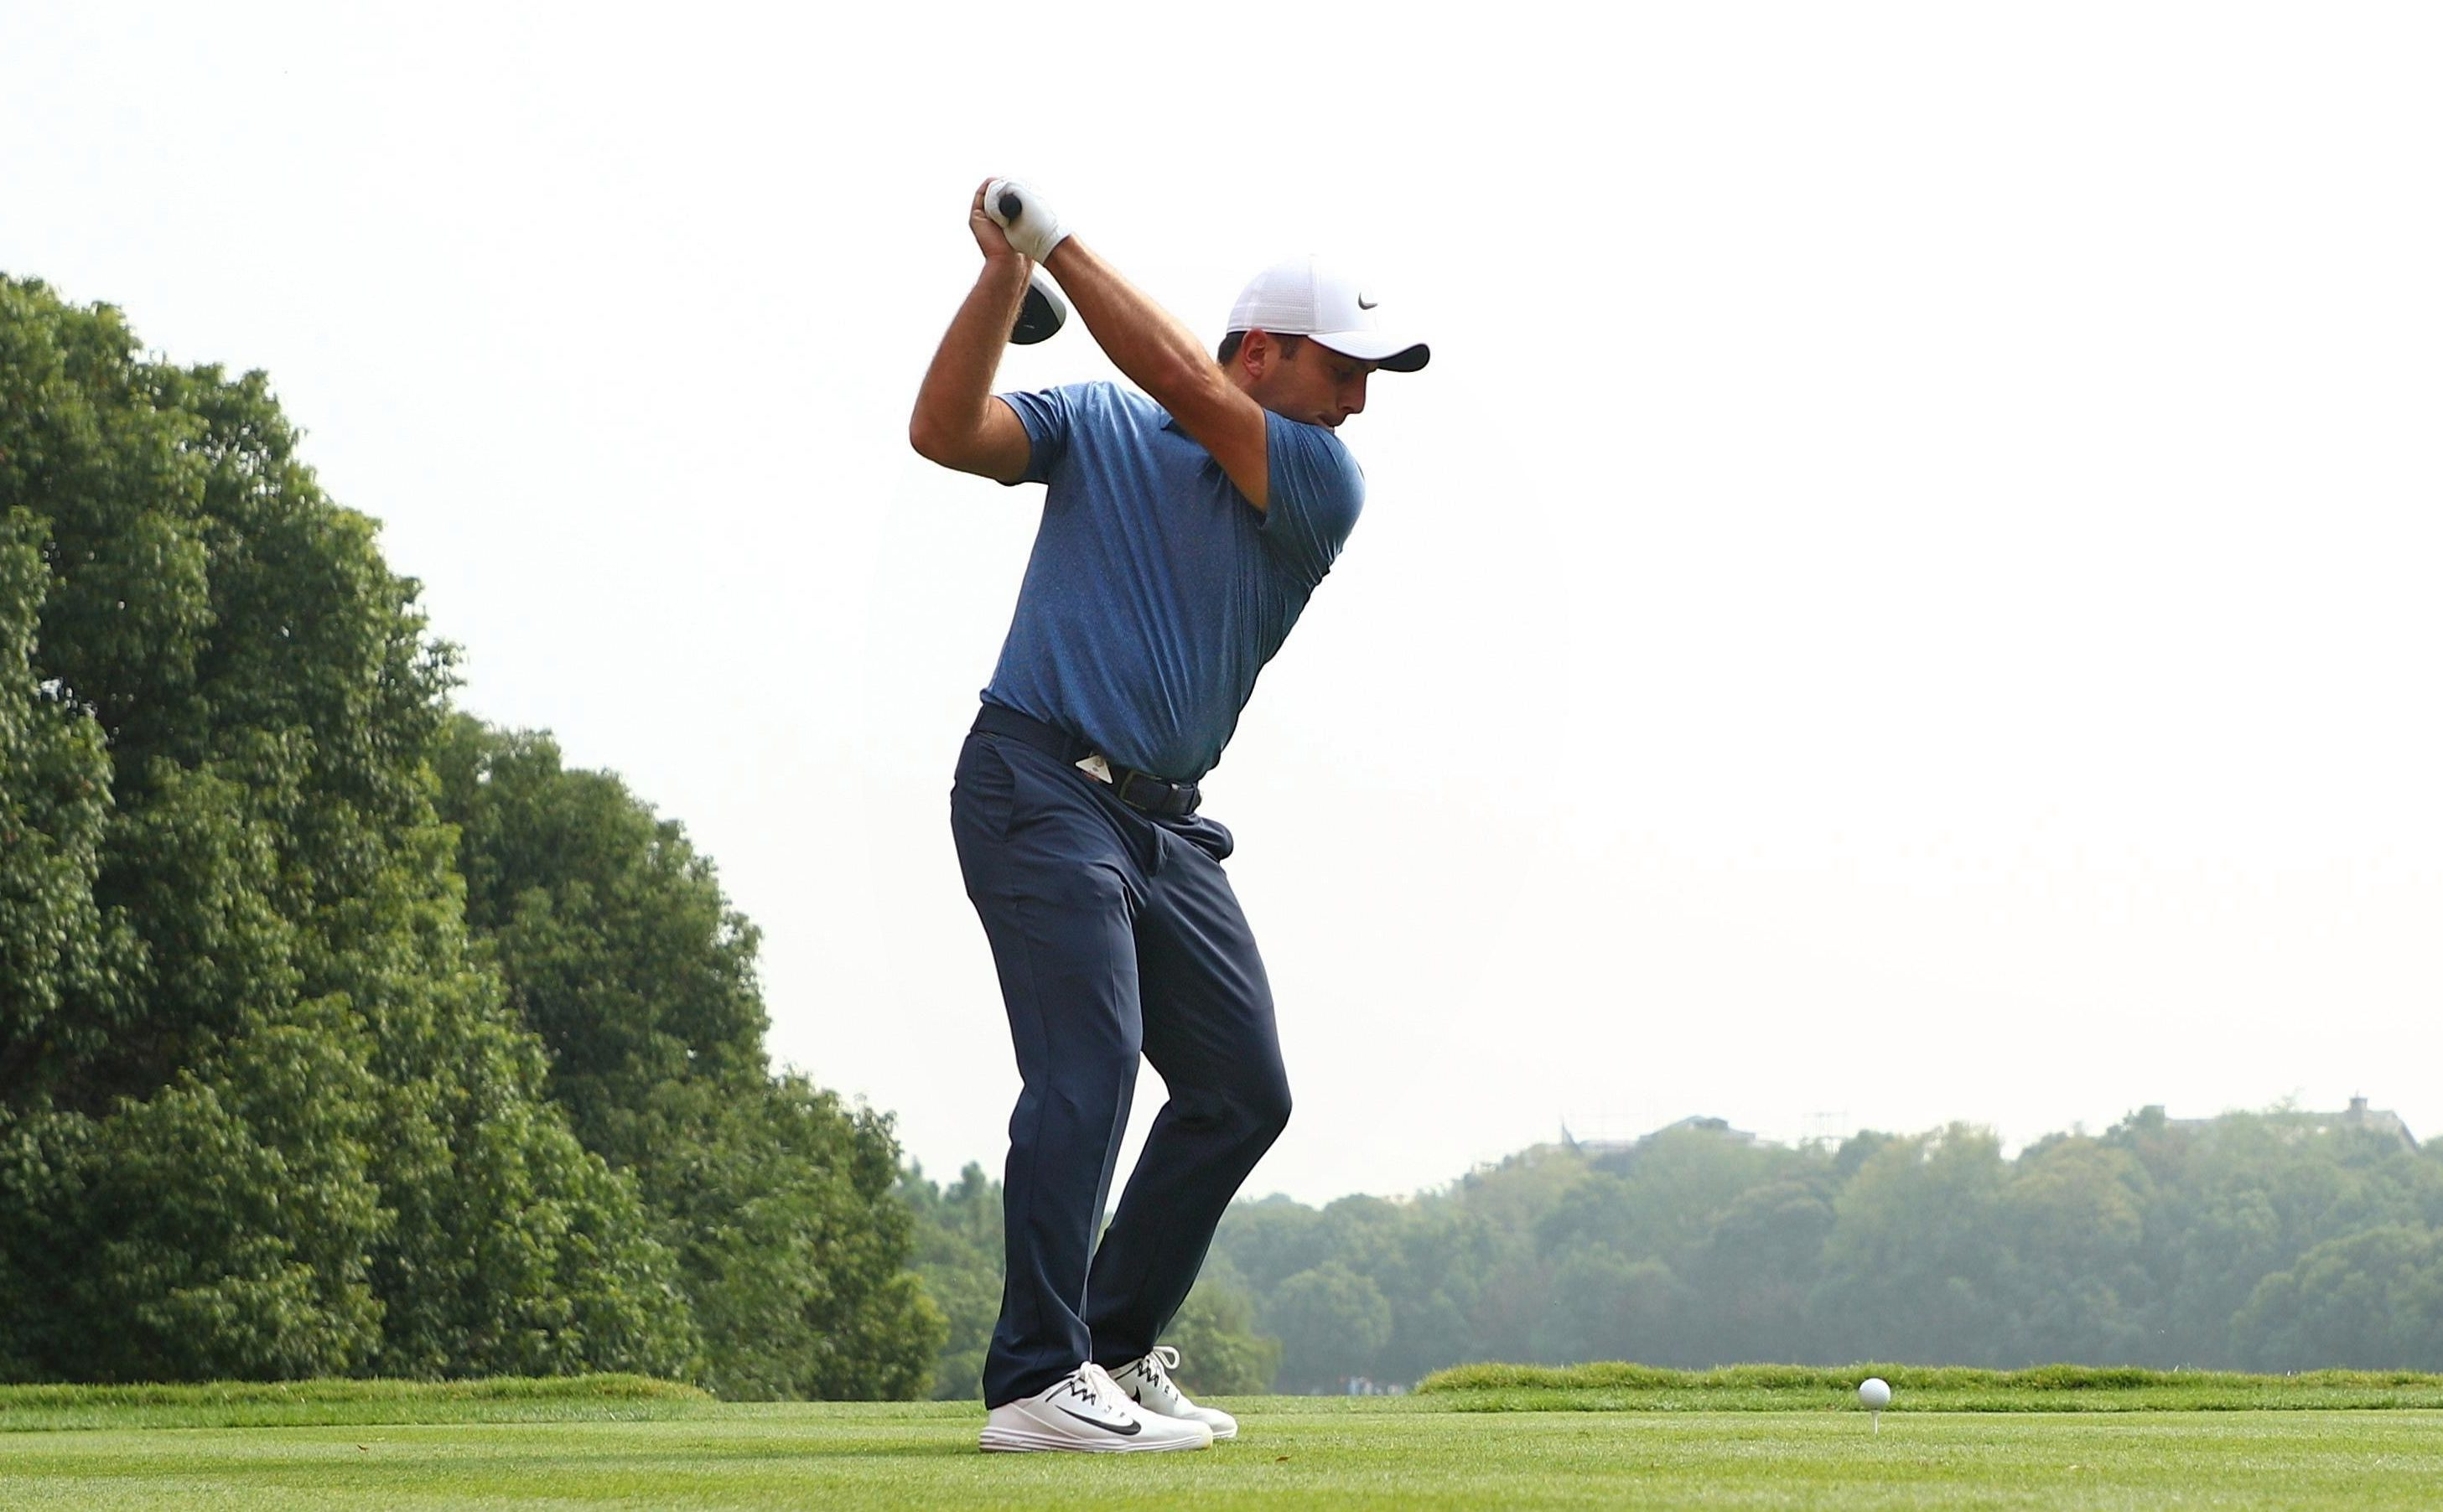 Francesco Molinari belies triumphing in the Race to Dubai would be the perfect reward for consistency